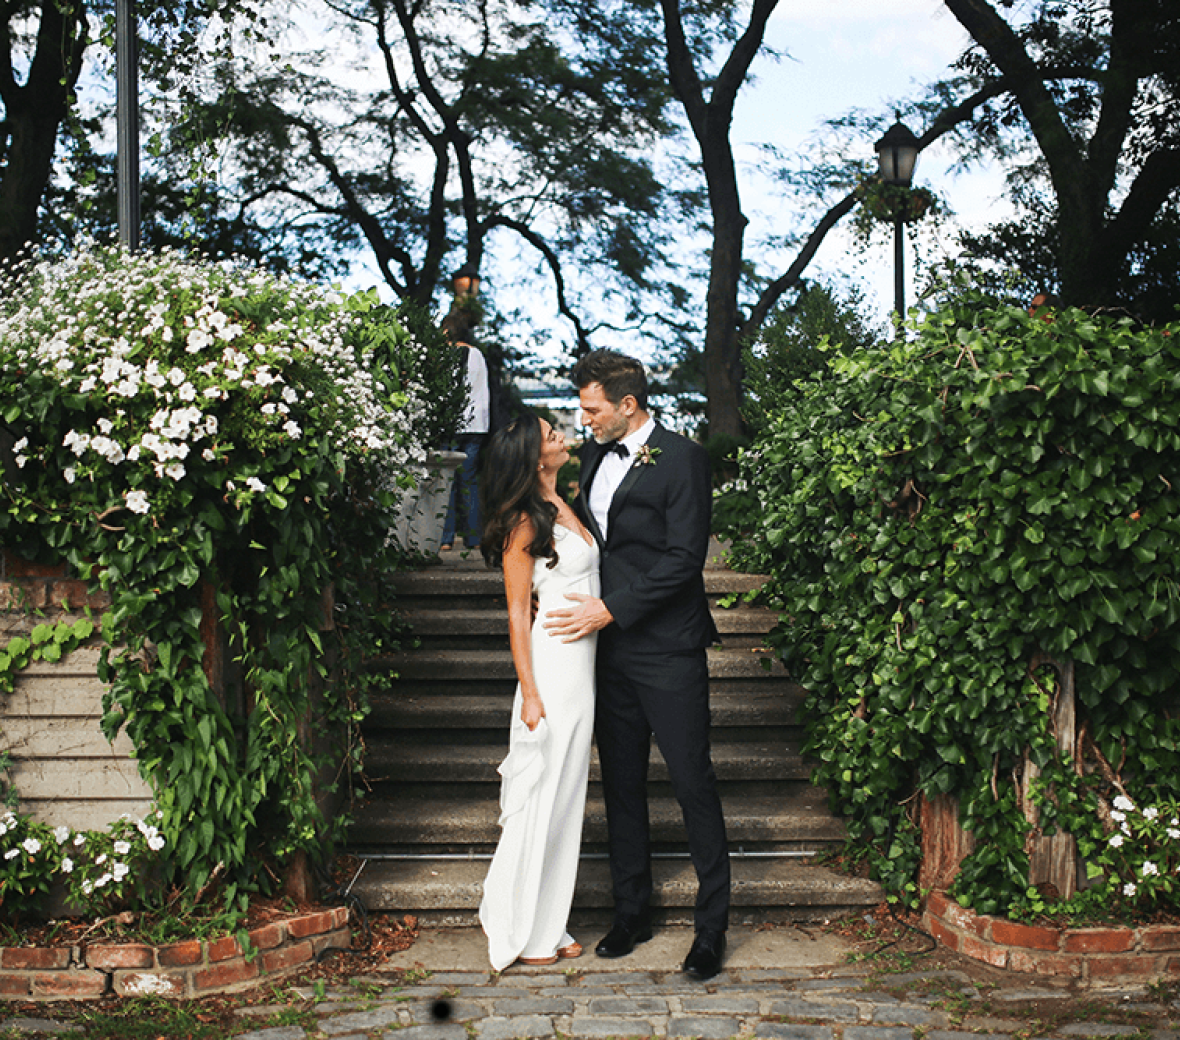 A bride and groom standing by steps and staring into each others' eyes